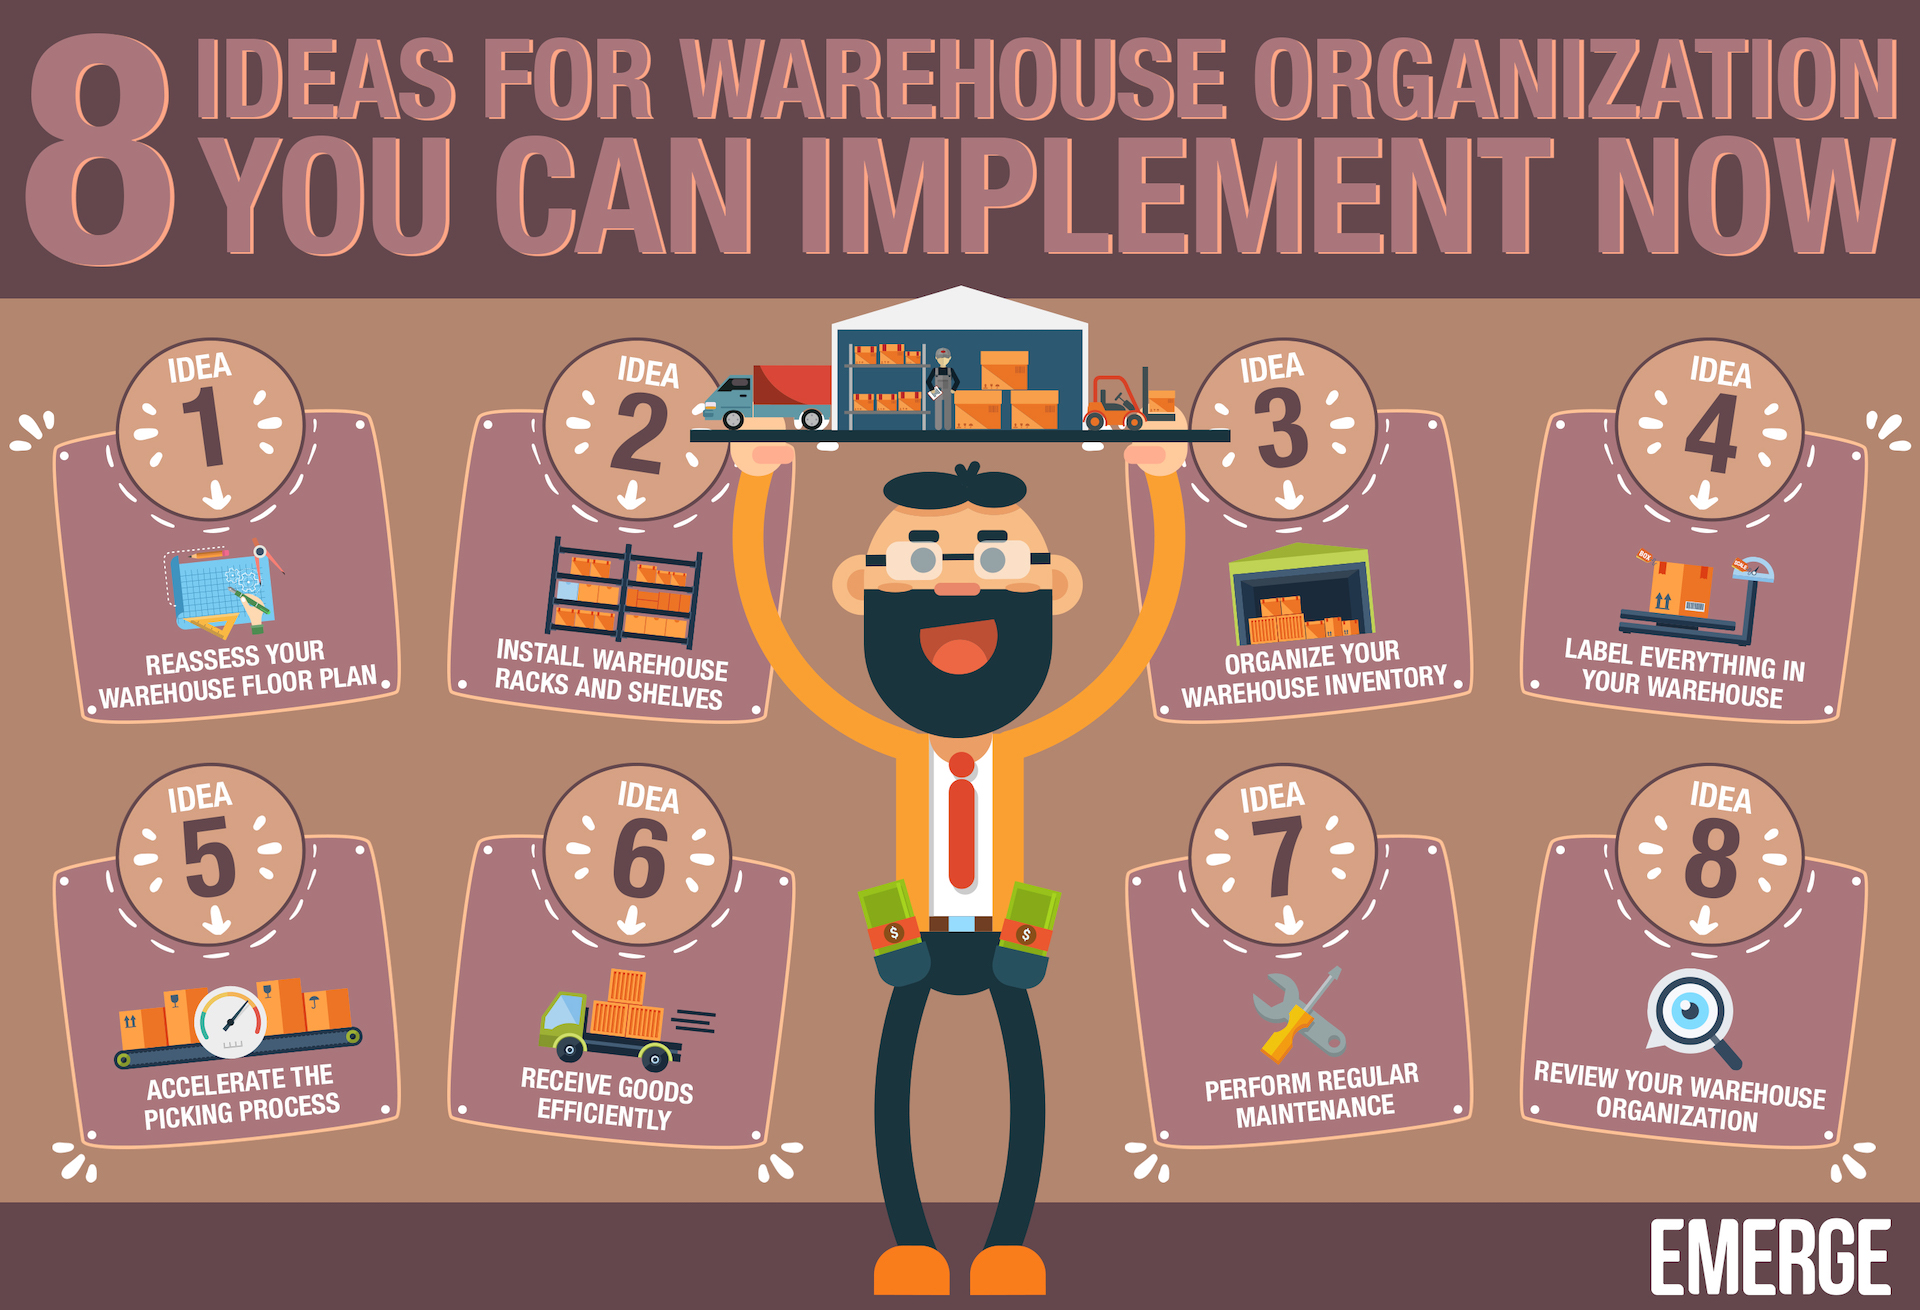 8 Warehouse Organization Ideas You Can Implement Now (in 2019) on